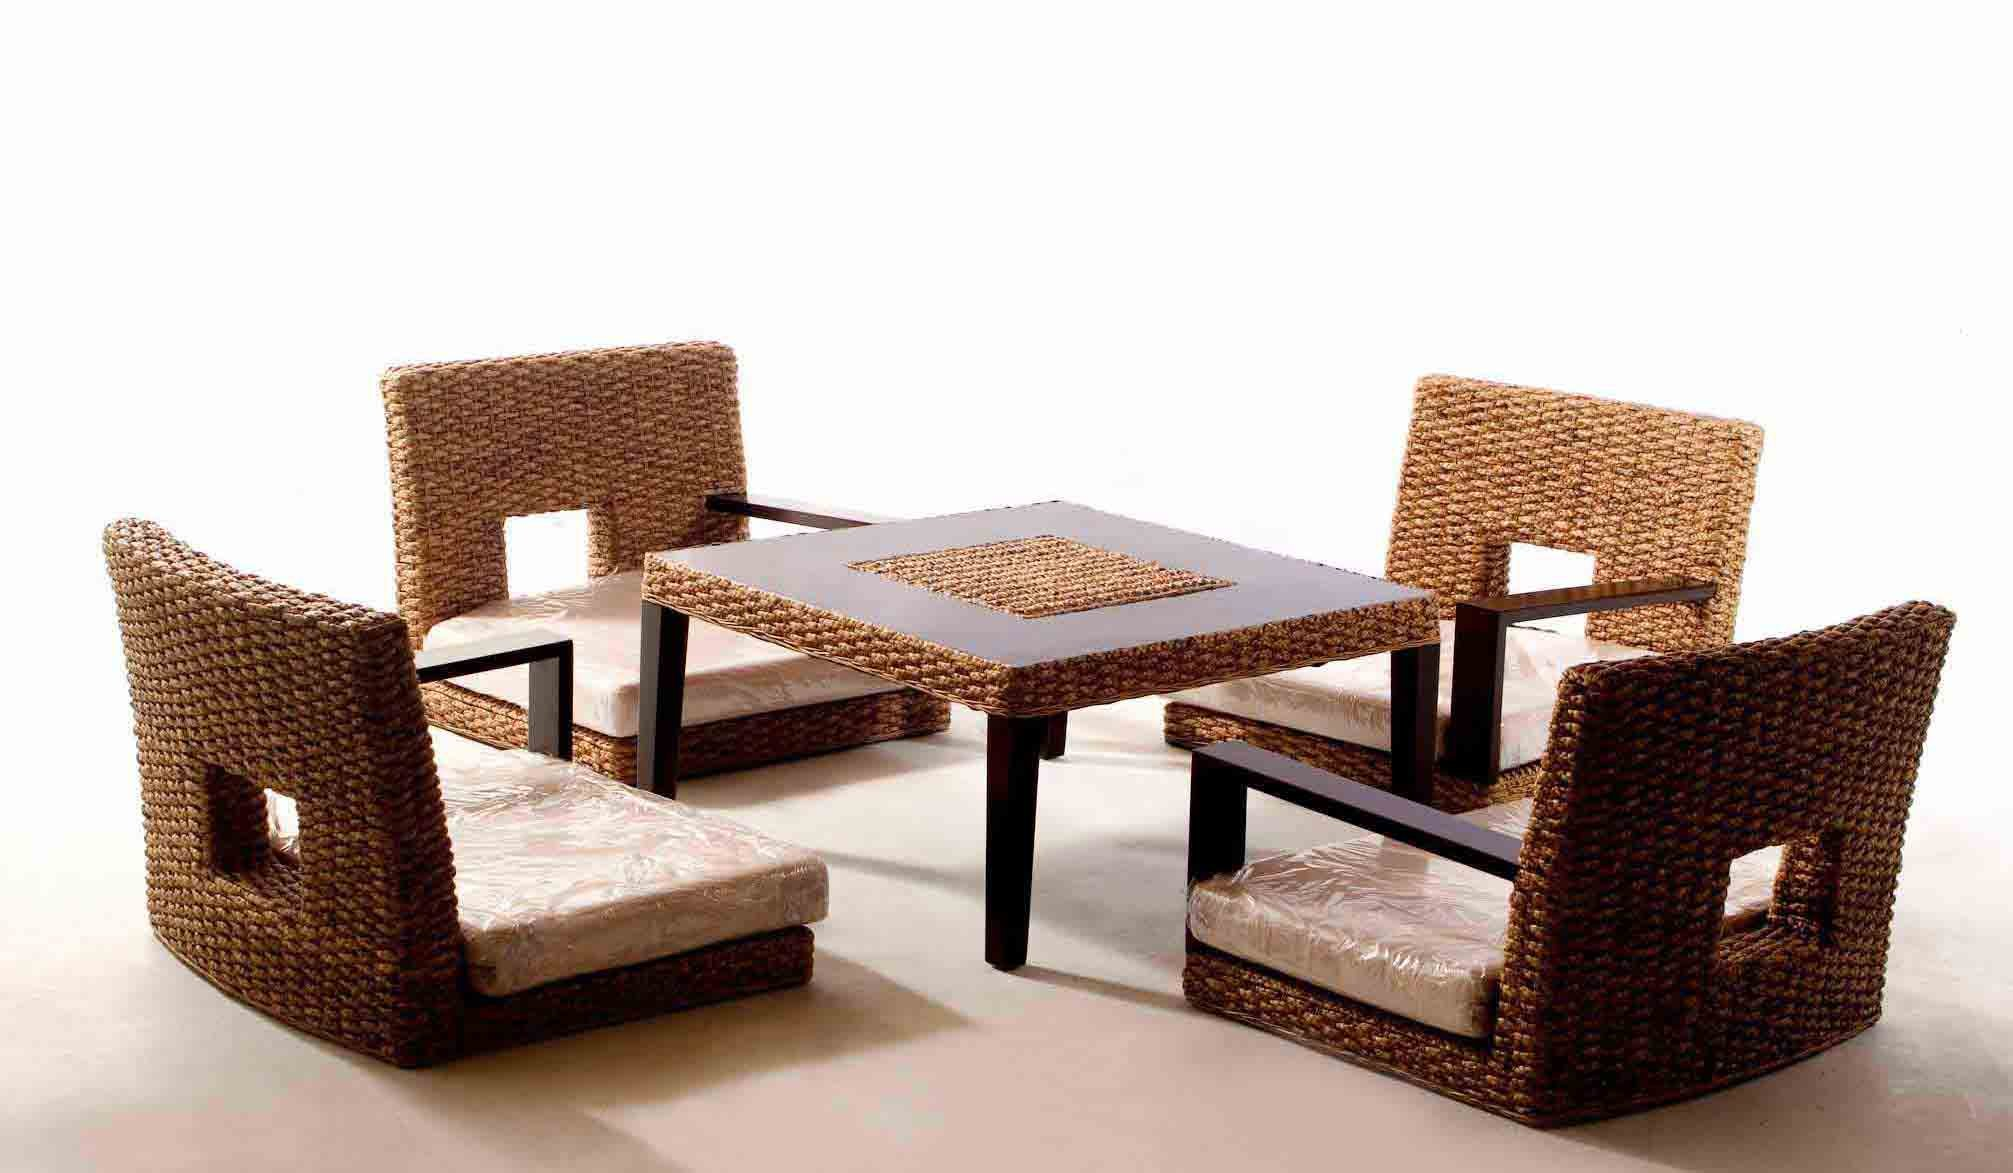 Japanese Dining Room Furniture From Hara Design Dining Room Furniture Dini